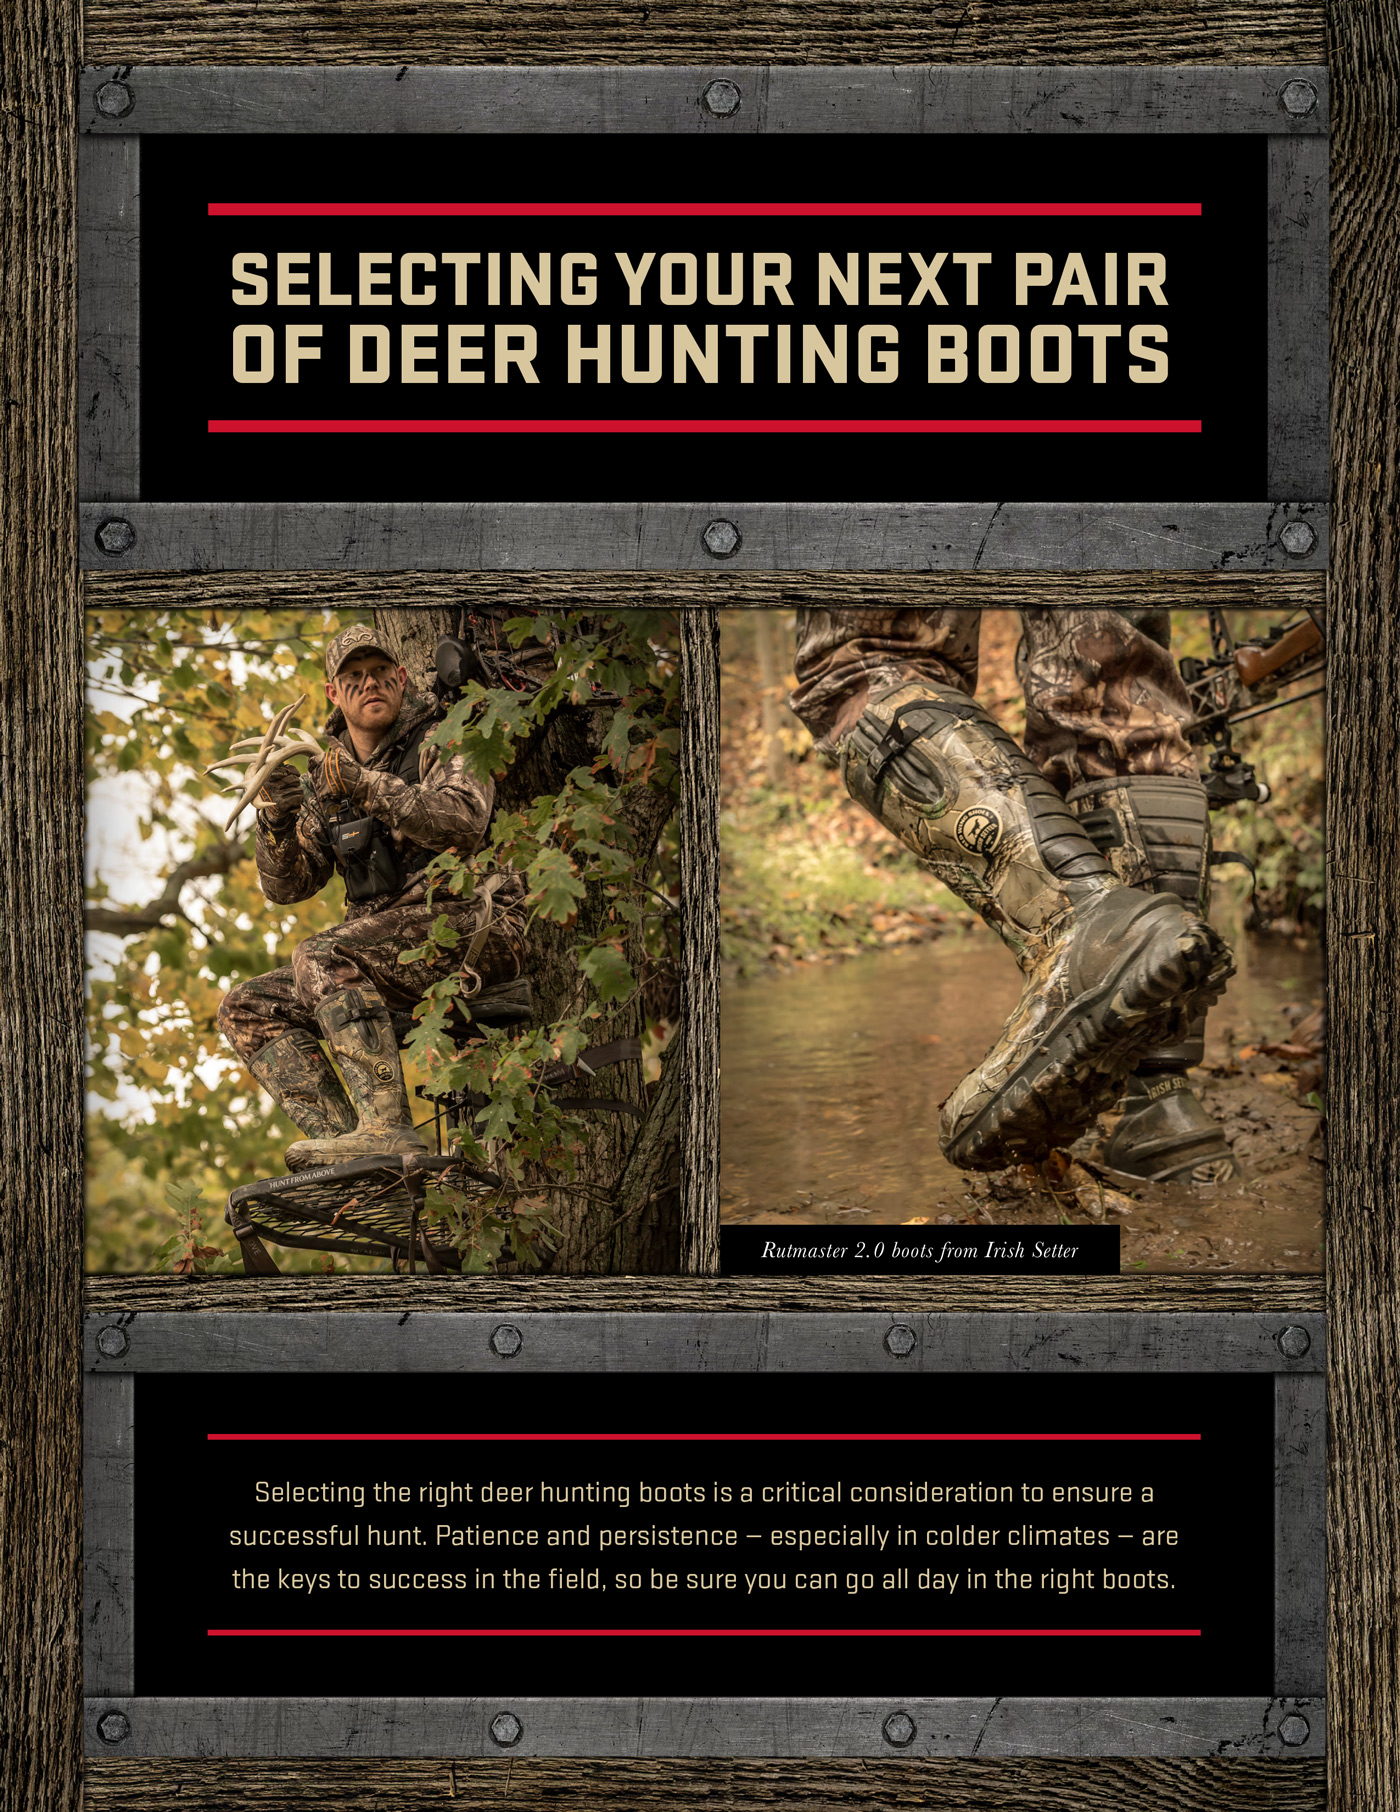 Selecting Deer Hunting Boots